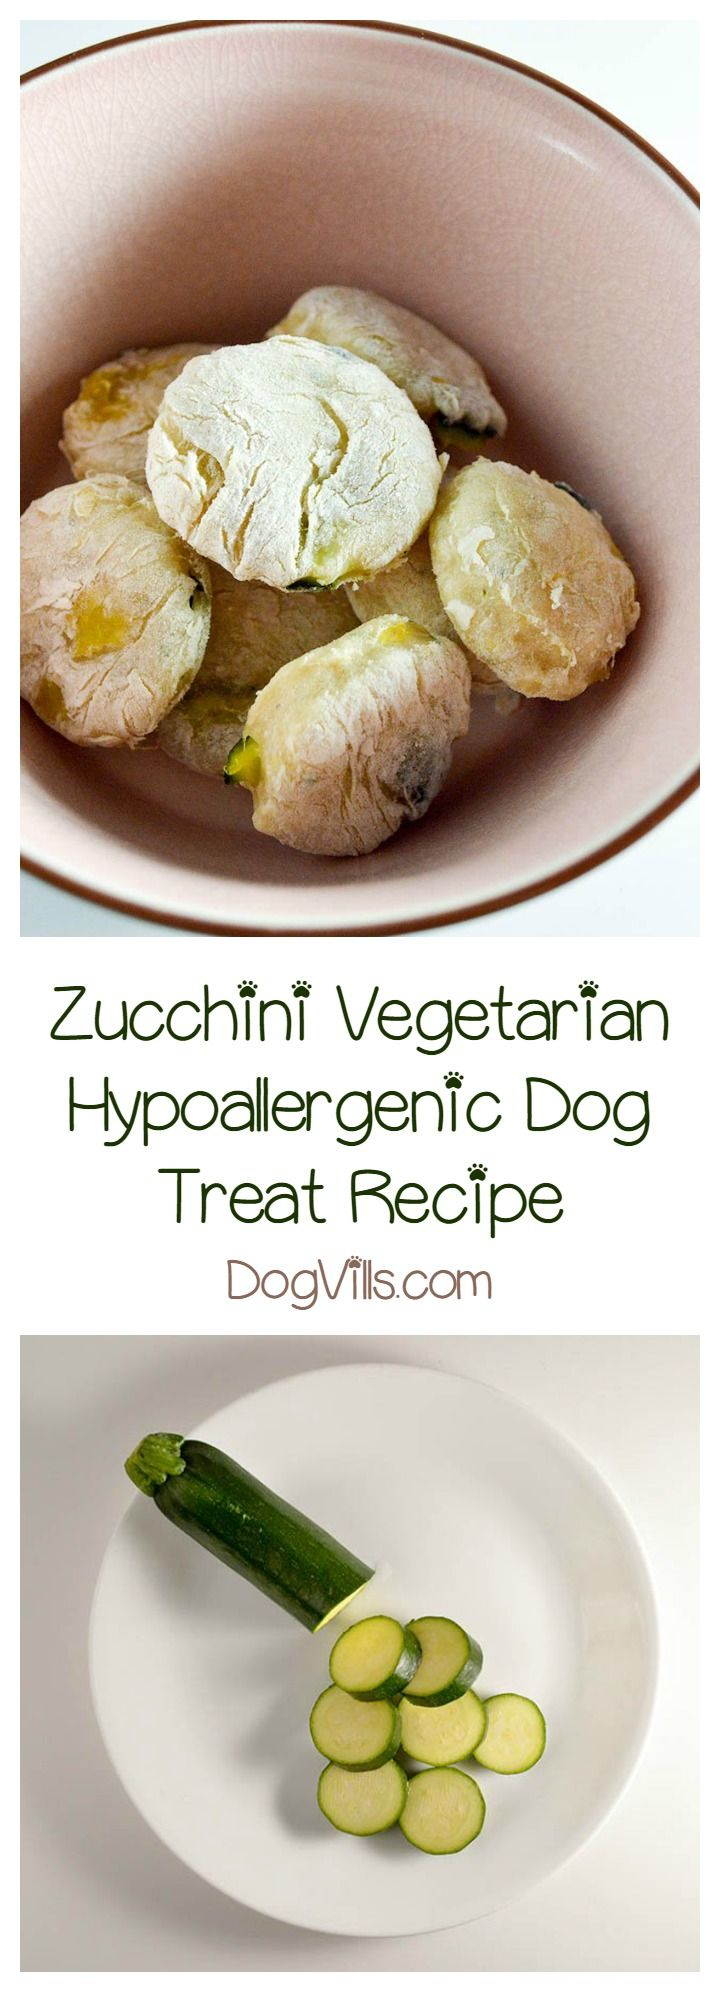 With Farmer's Market season upon us, now is a really great time to whip up a tasty vegetarian dog treat recipe! You can often find the zucchini on sale incredibly cheap. This particular treat is great for those looking for hypoallergenic dog treat recipes, since veggies play the starring role.